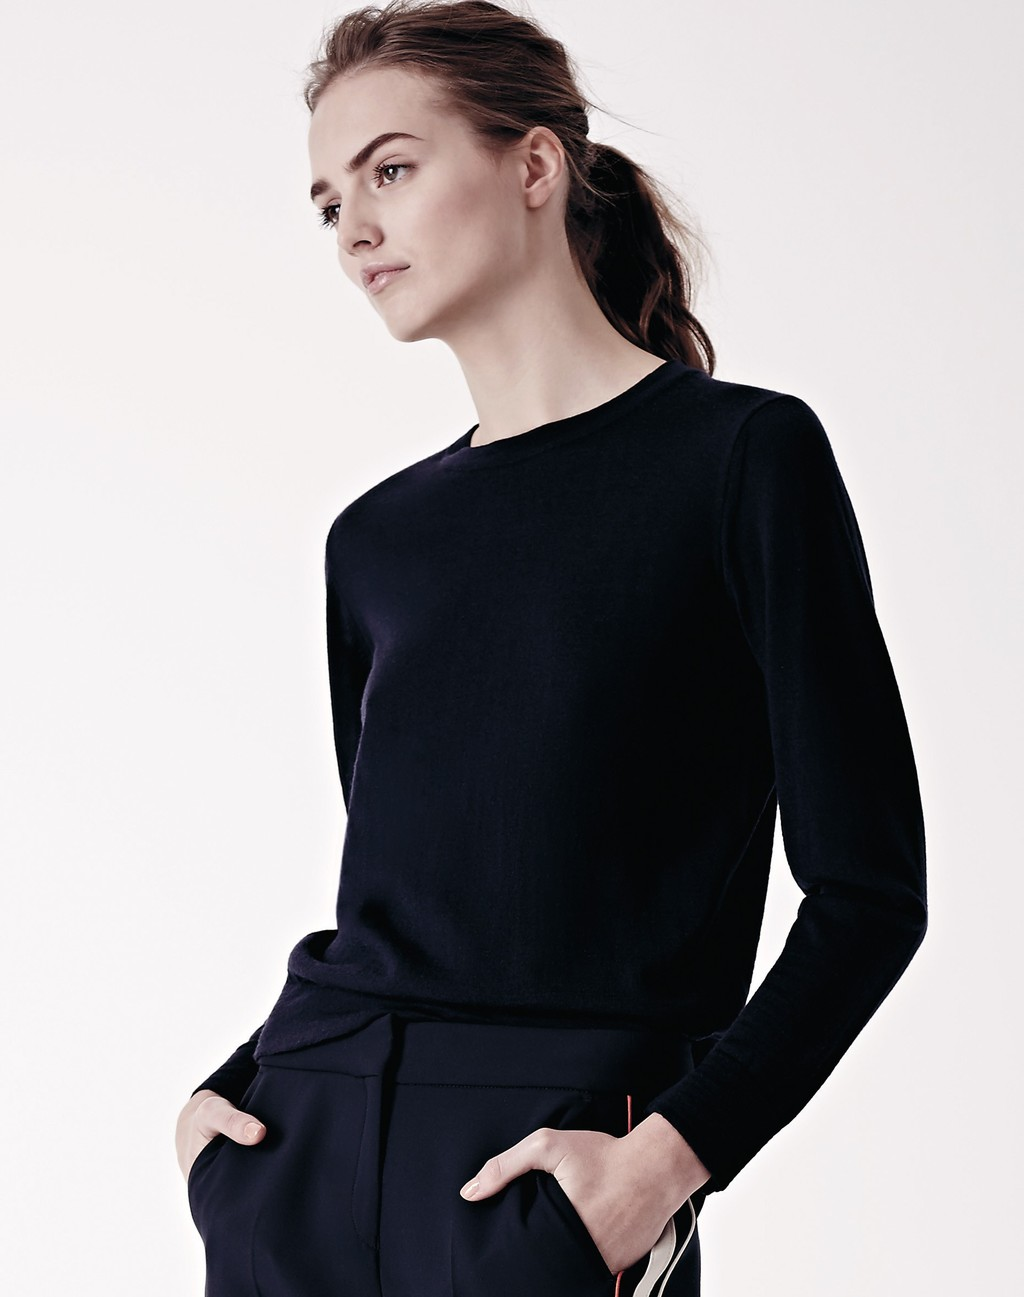 The Perfect Crew Neck Jumper Navy - pattern: plain; style: standard; predominant colour: navy; occasions: casual, creative work; length: standard; fibres: wool - mix; fit: standard fit; neckline: crew; sleeve length: long sleeve; sleeve style: standard; texture group: knits/crochet; pattern type: knitted - fine stitch; season: a/w 2015